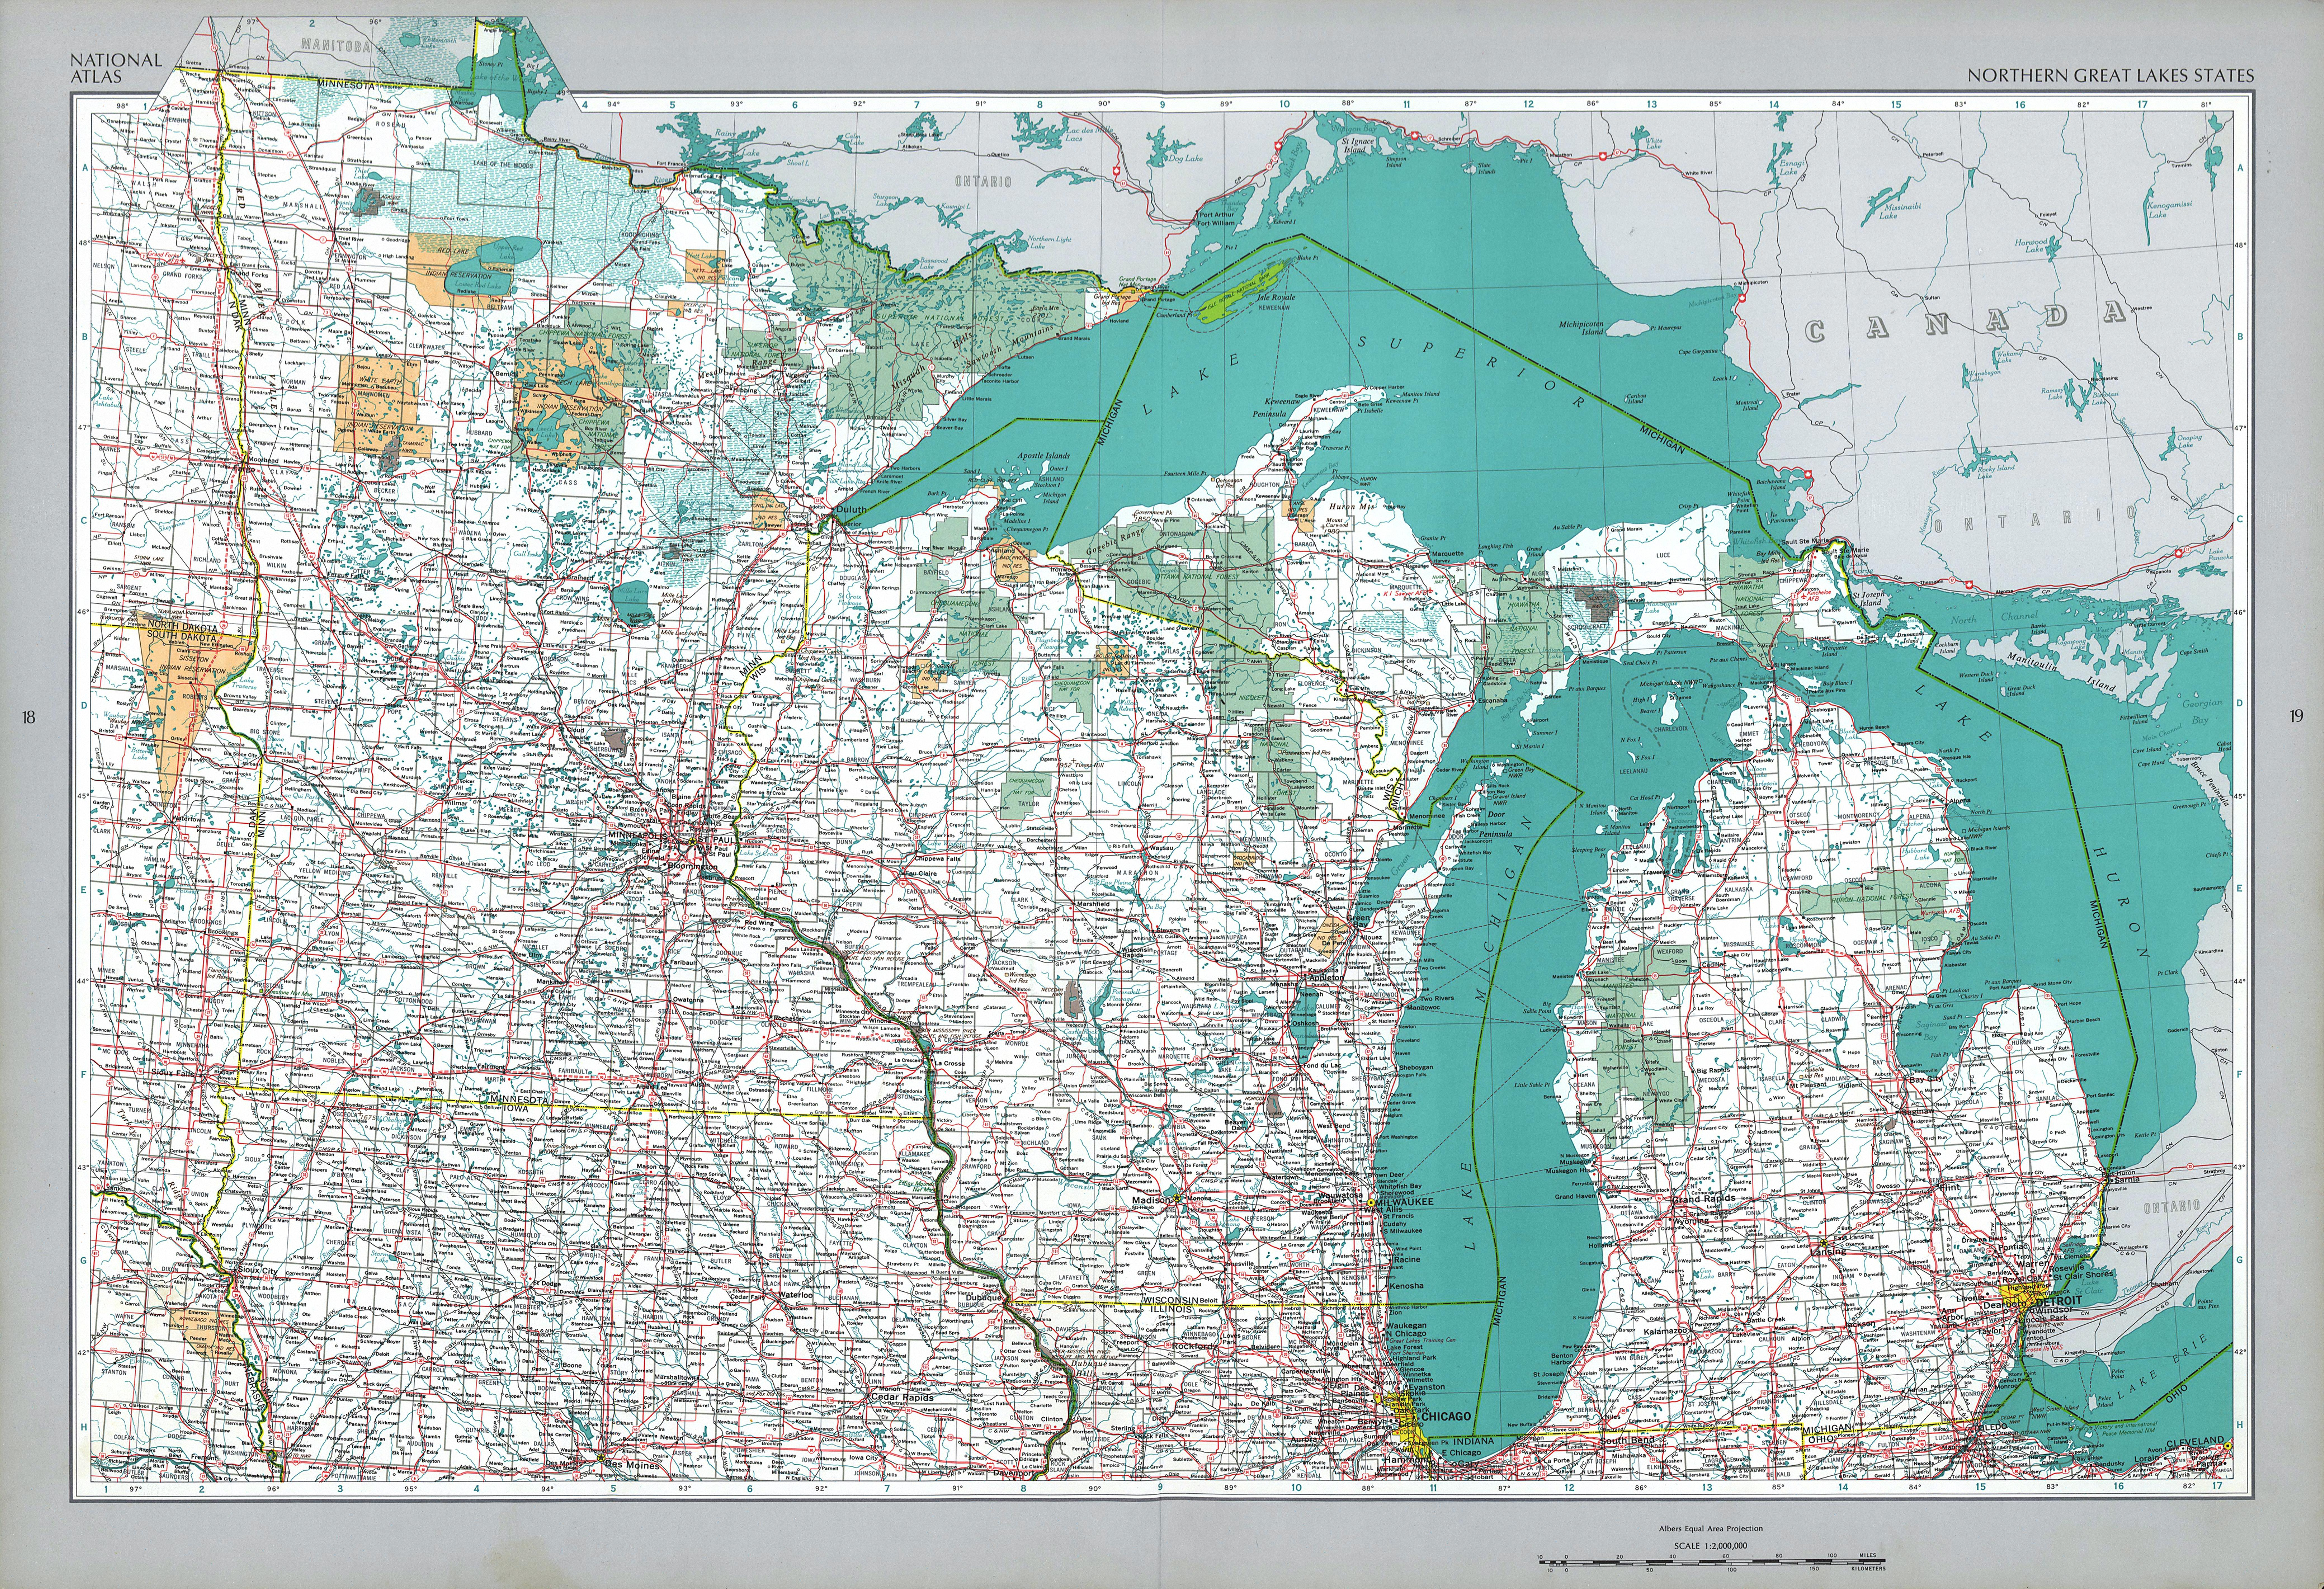 Northern Great Lakes States Map, United States